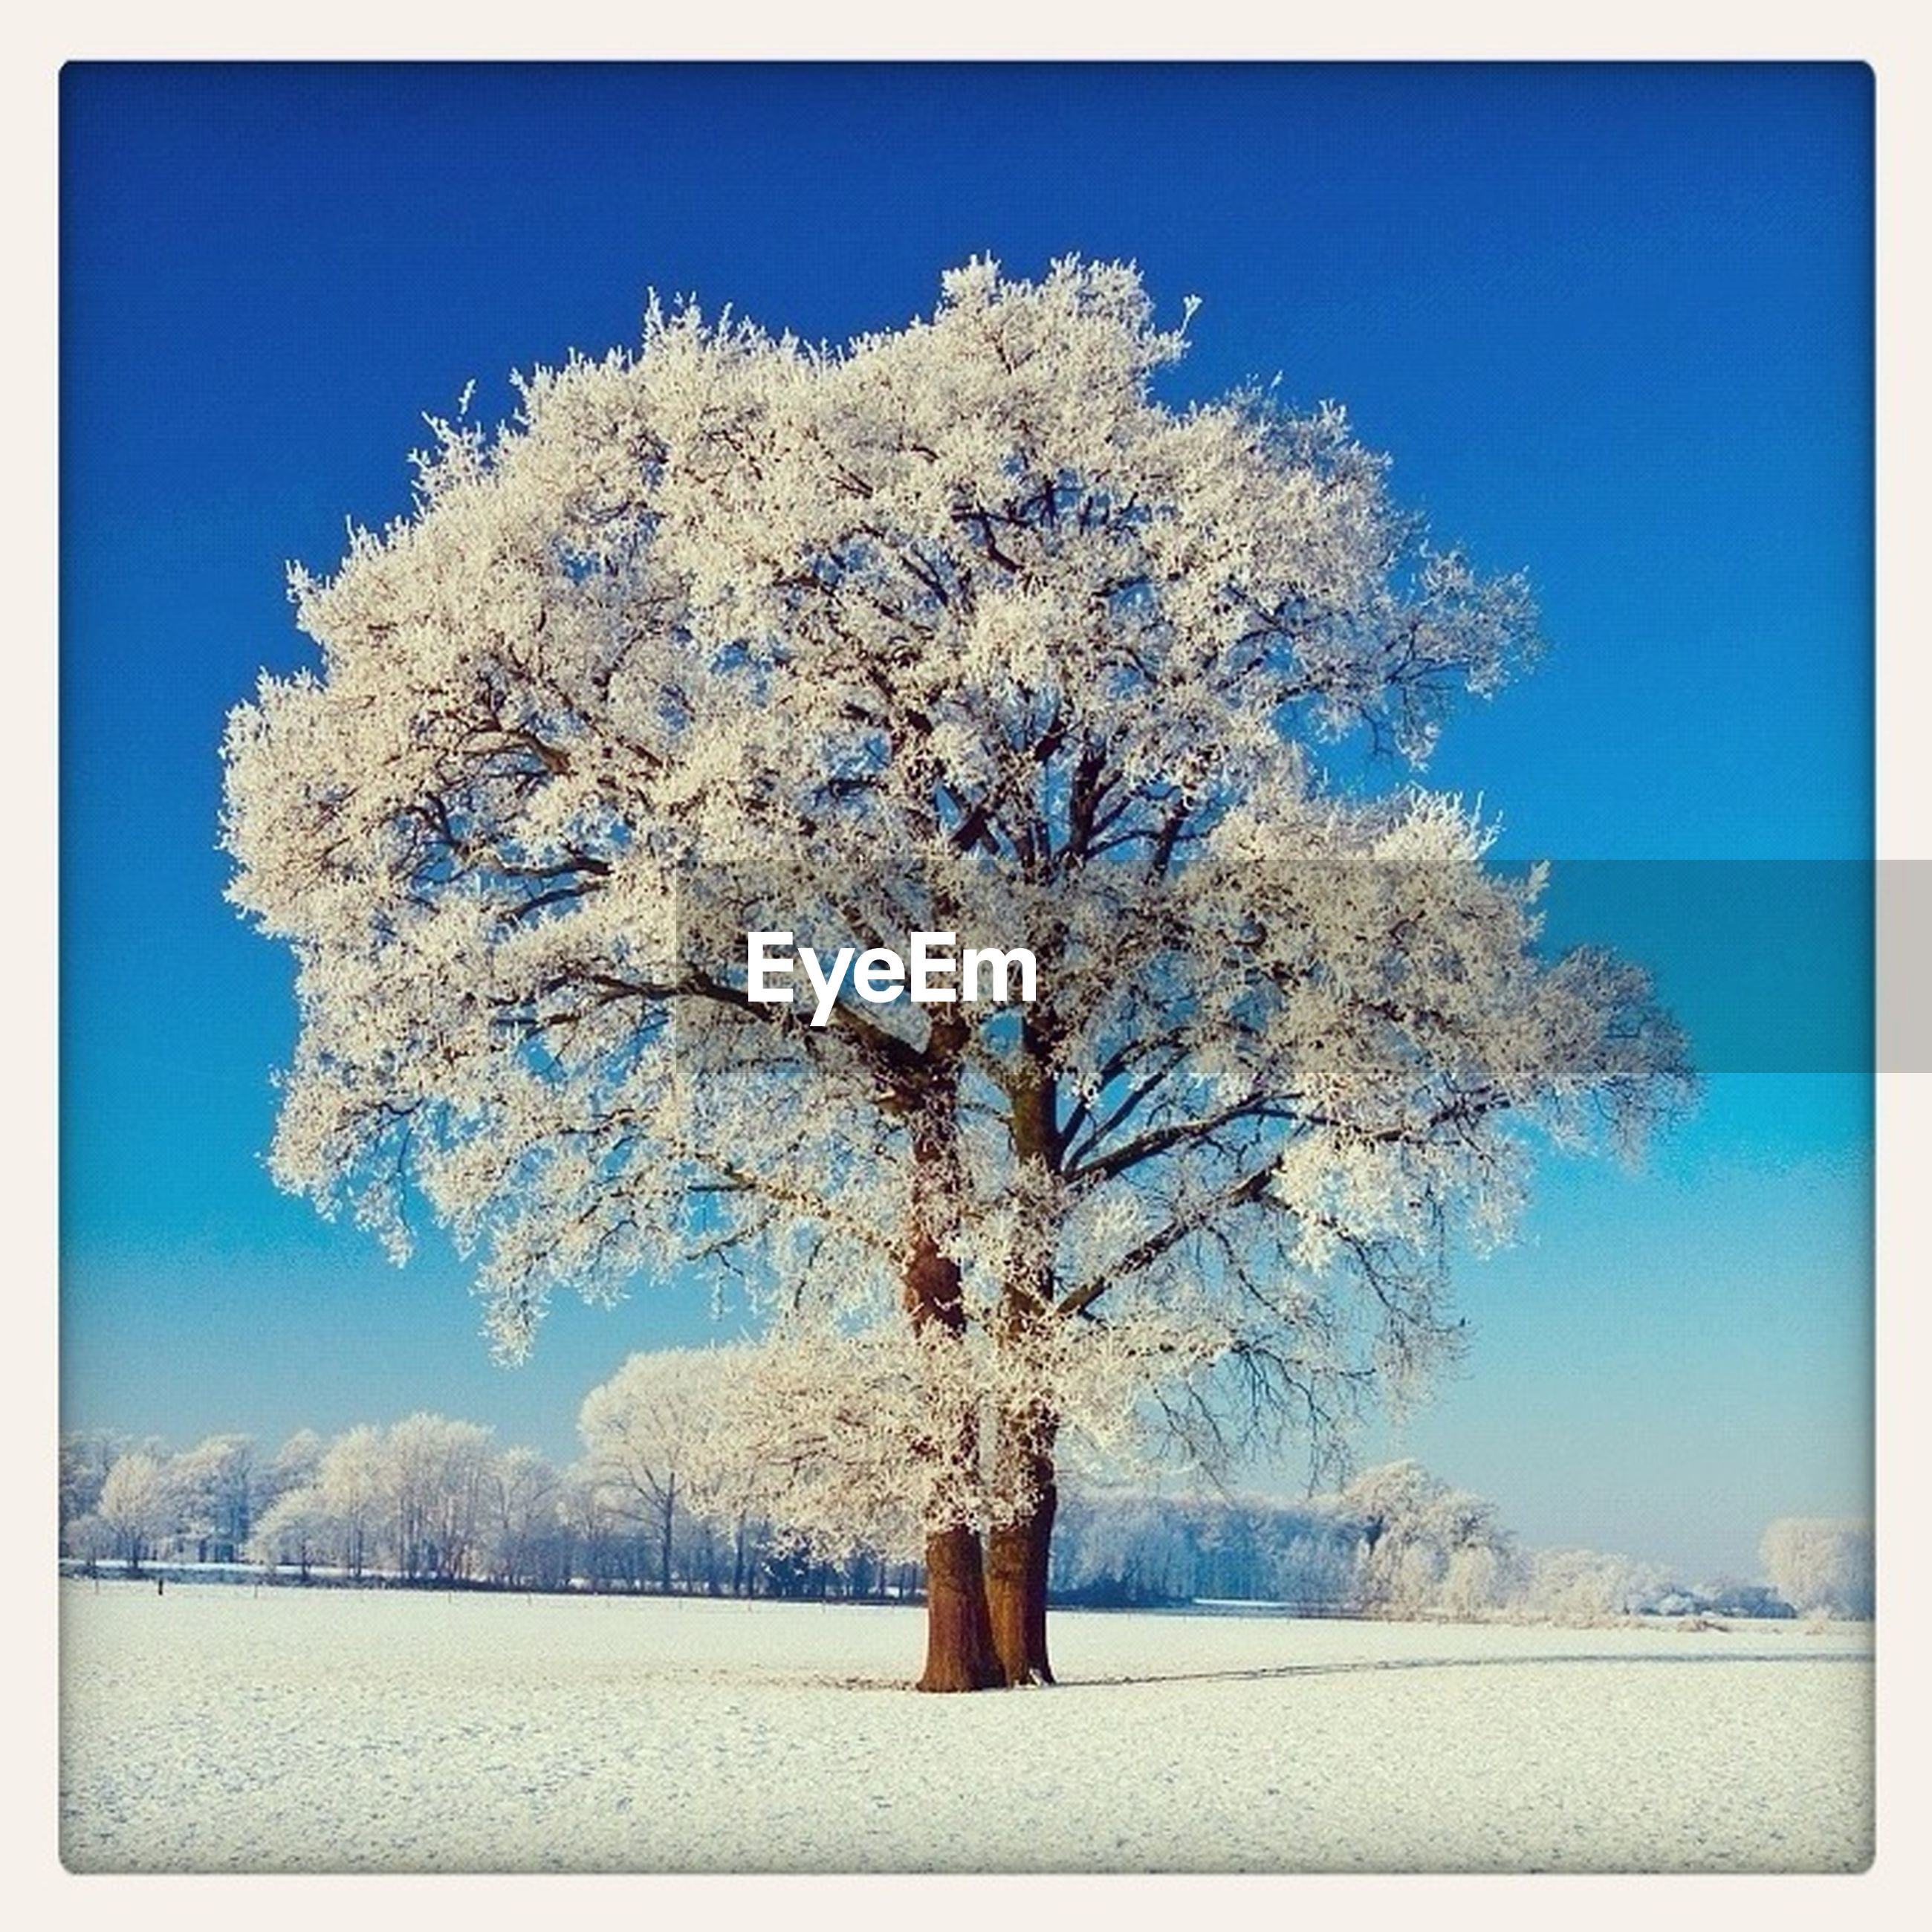 snow, winter, cold temperature, tree, season, blue, tranquility, tranquil scene, beauty in nature, landscape, nature, bare tree, scenics, clear sky, field, transfer print, branch, covering, sky, weather